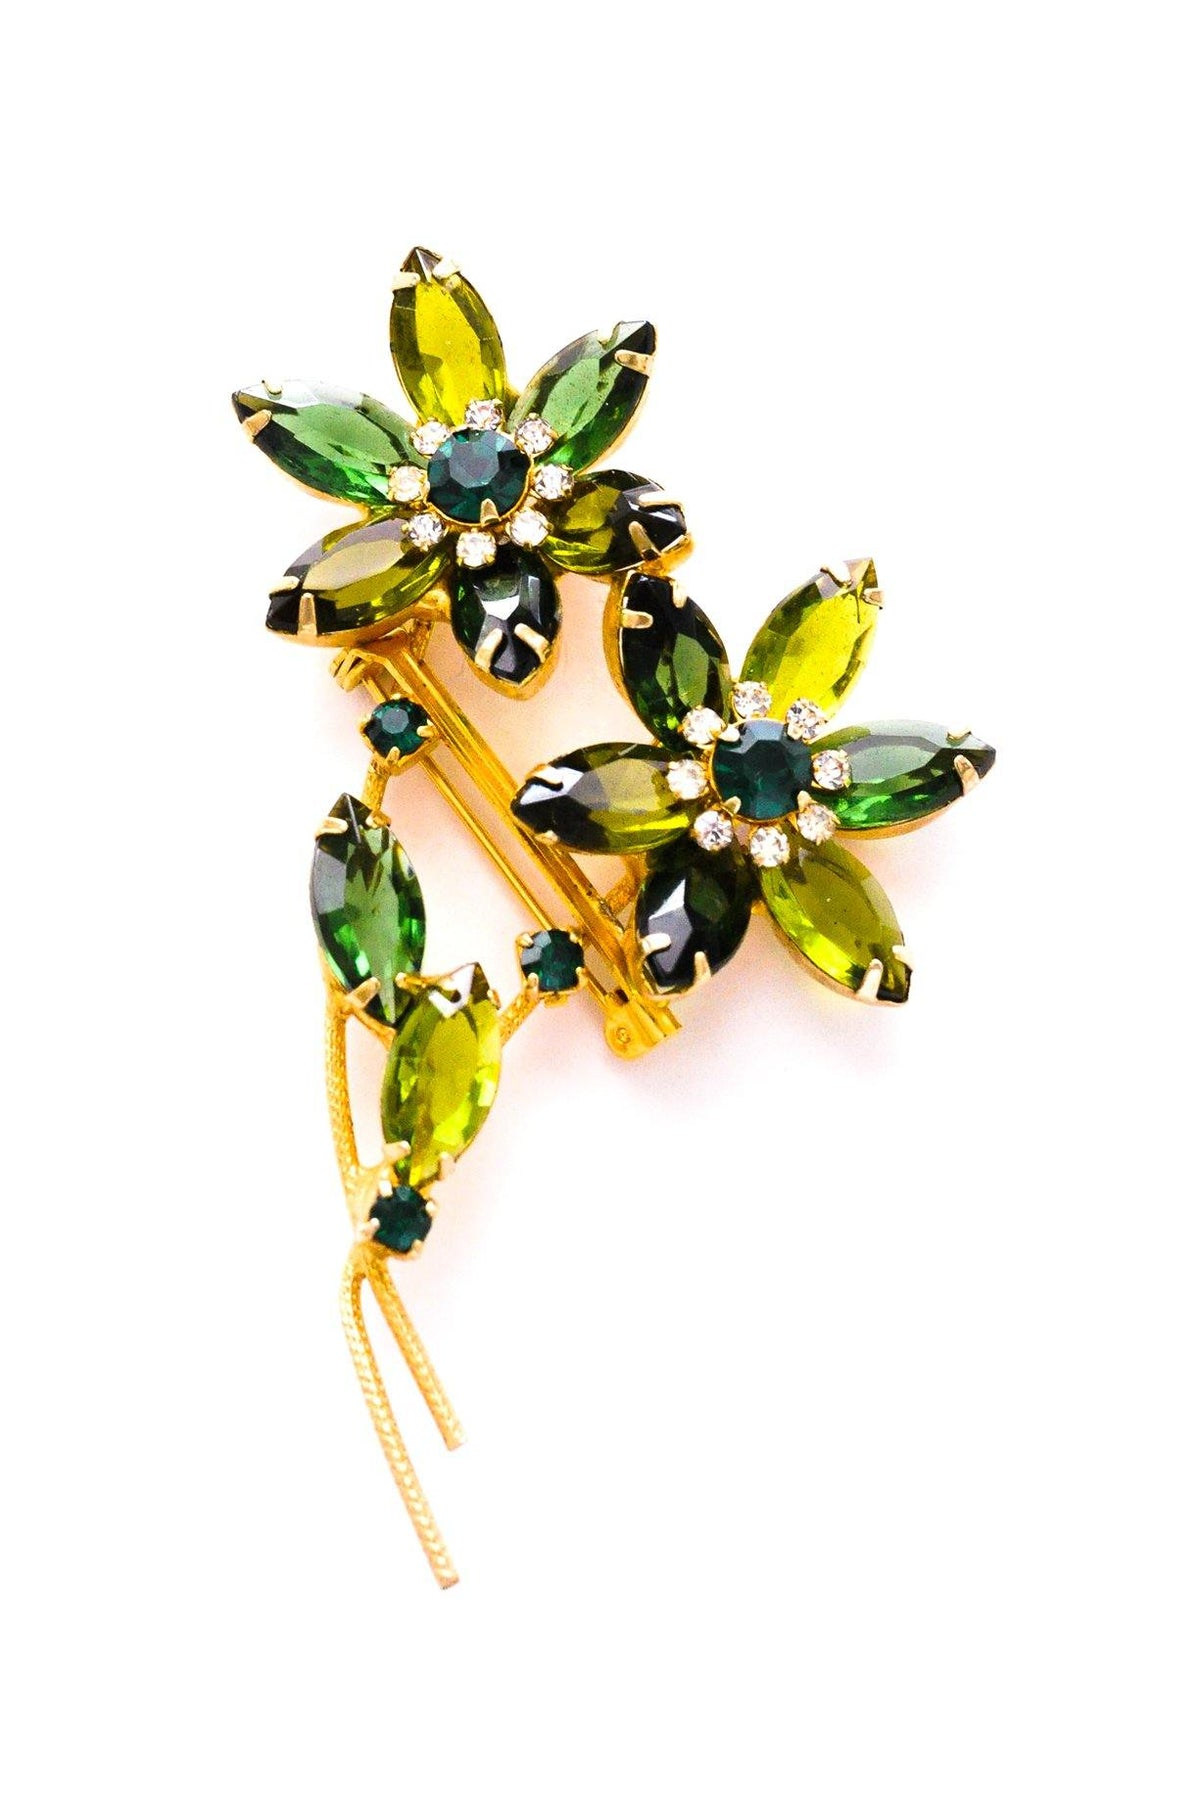 Green rhinestone stem brooch from Sweet & Spark.